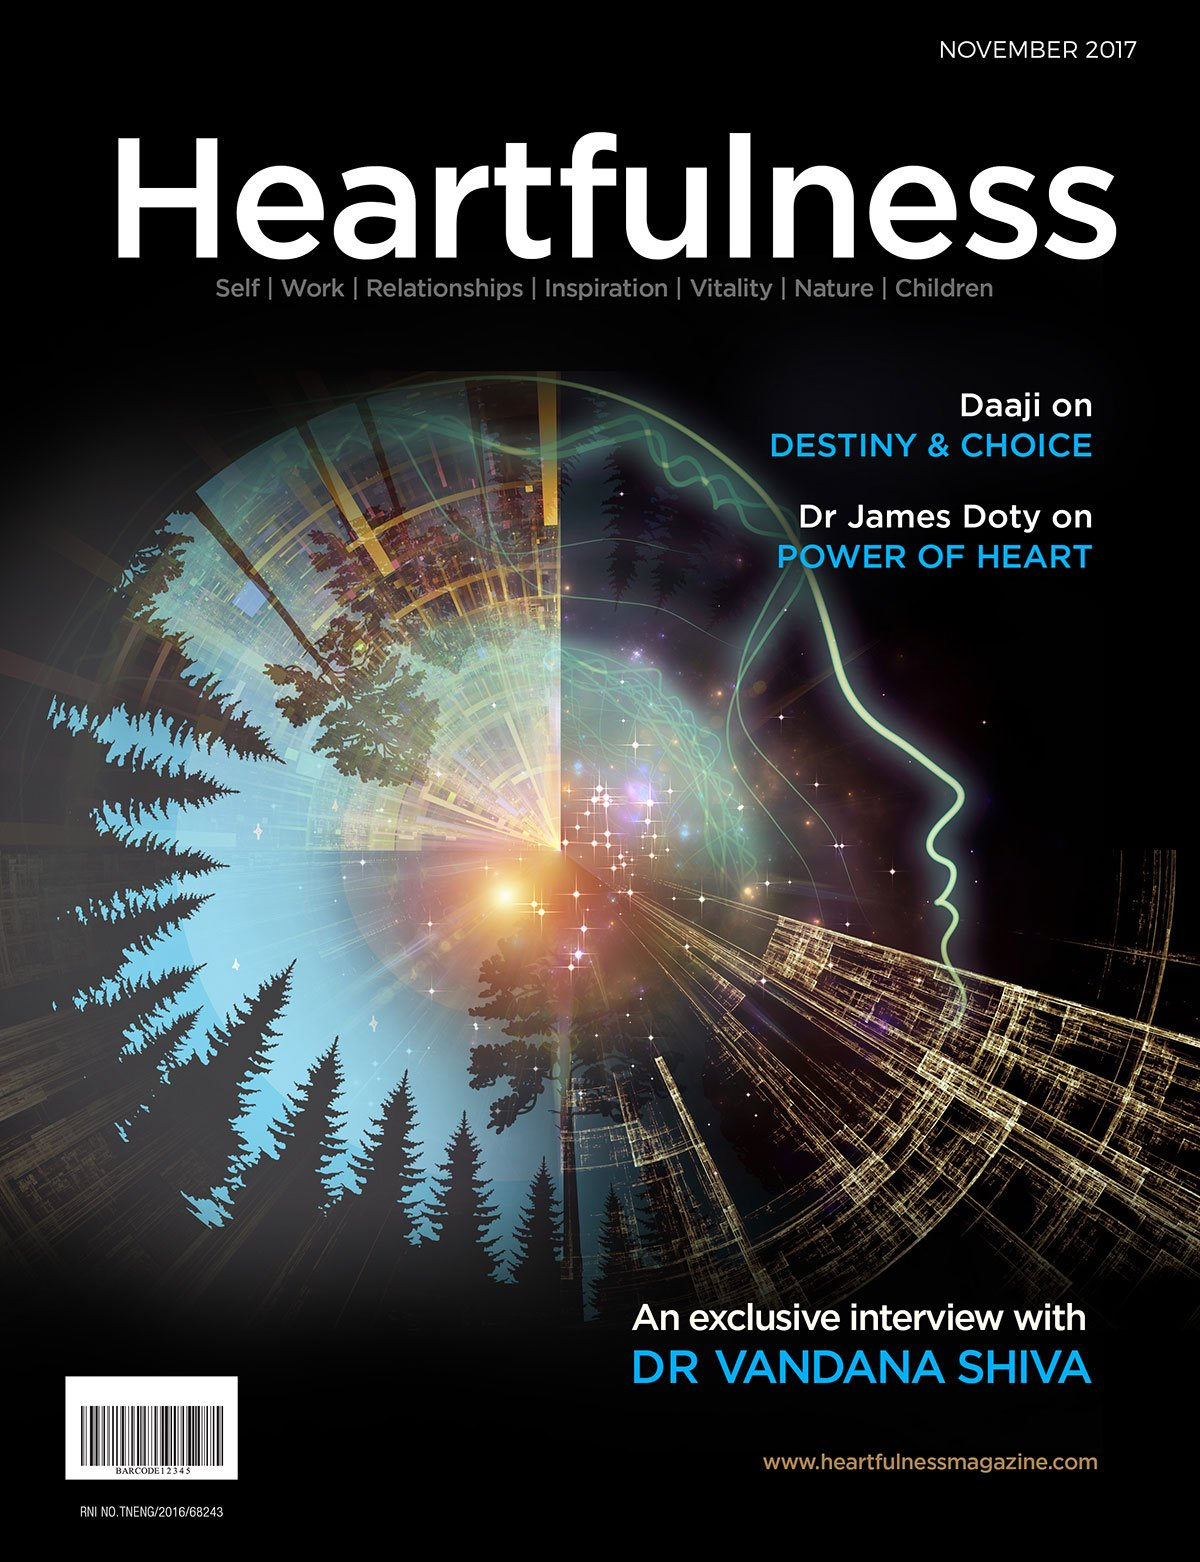 Heartfulness eMagazine - November 2017